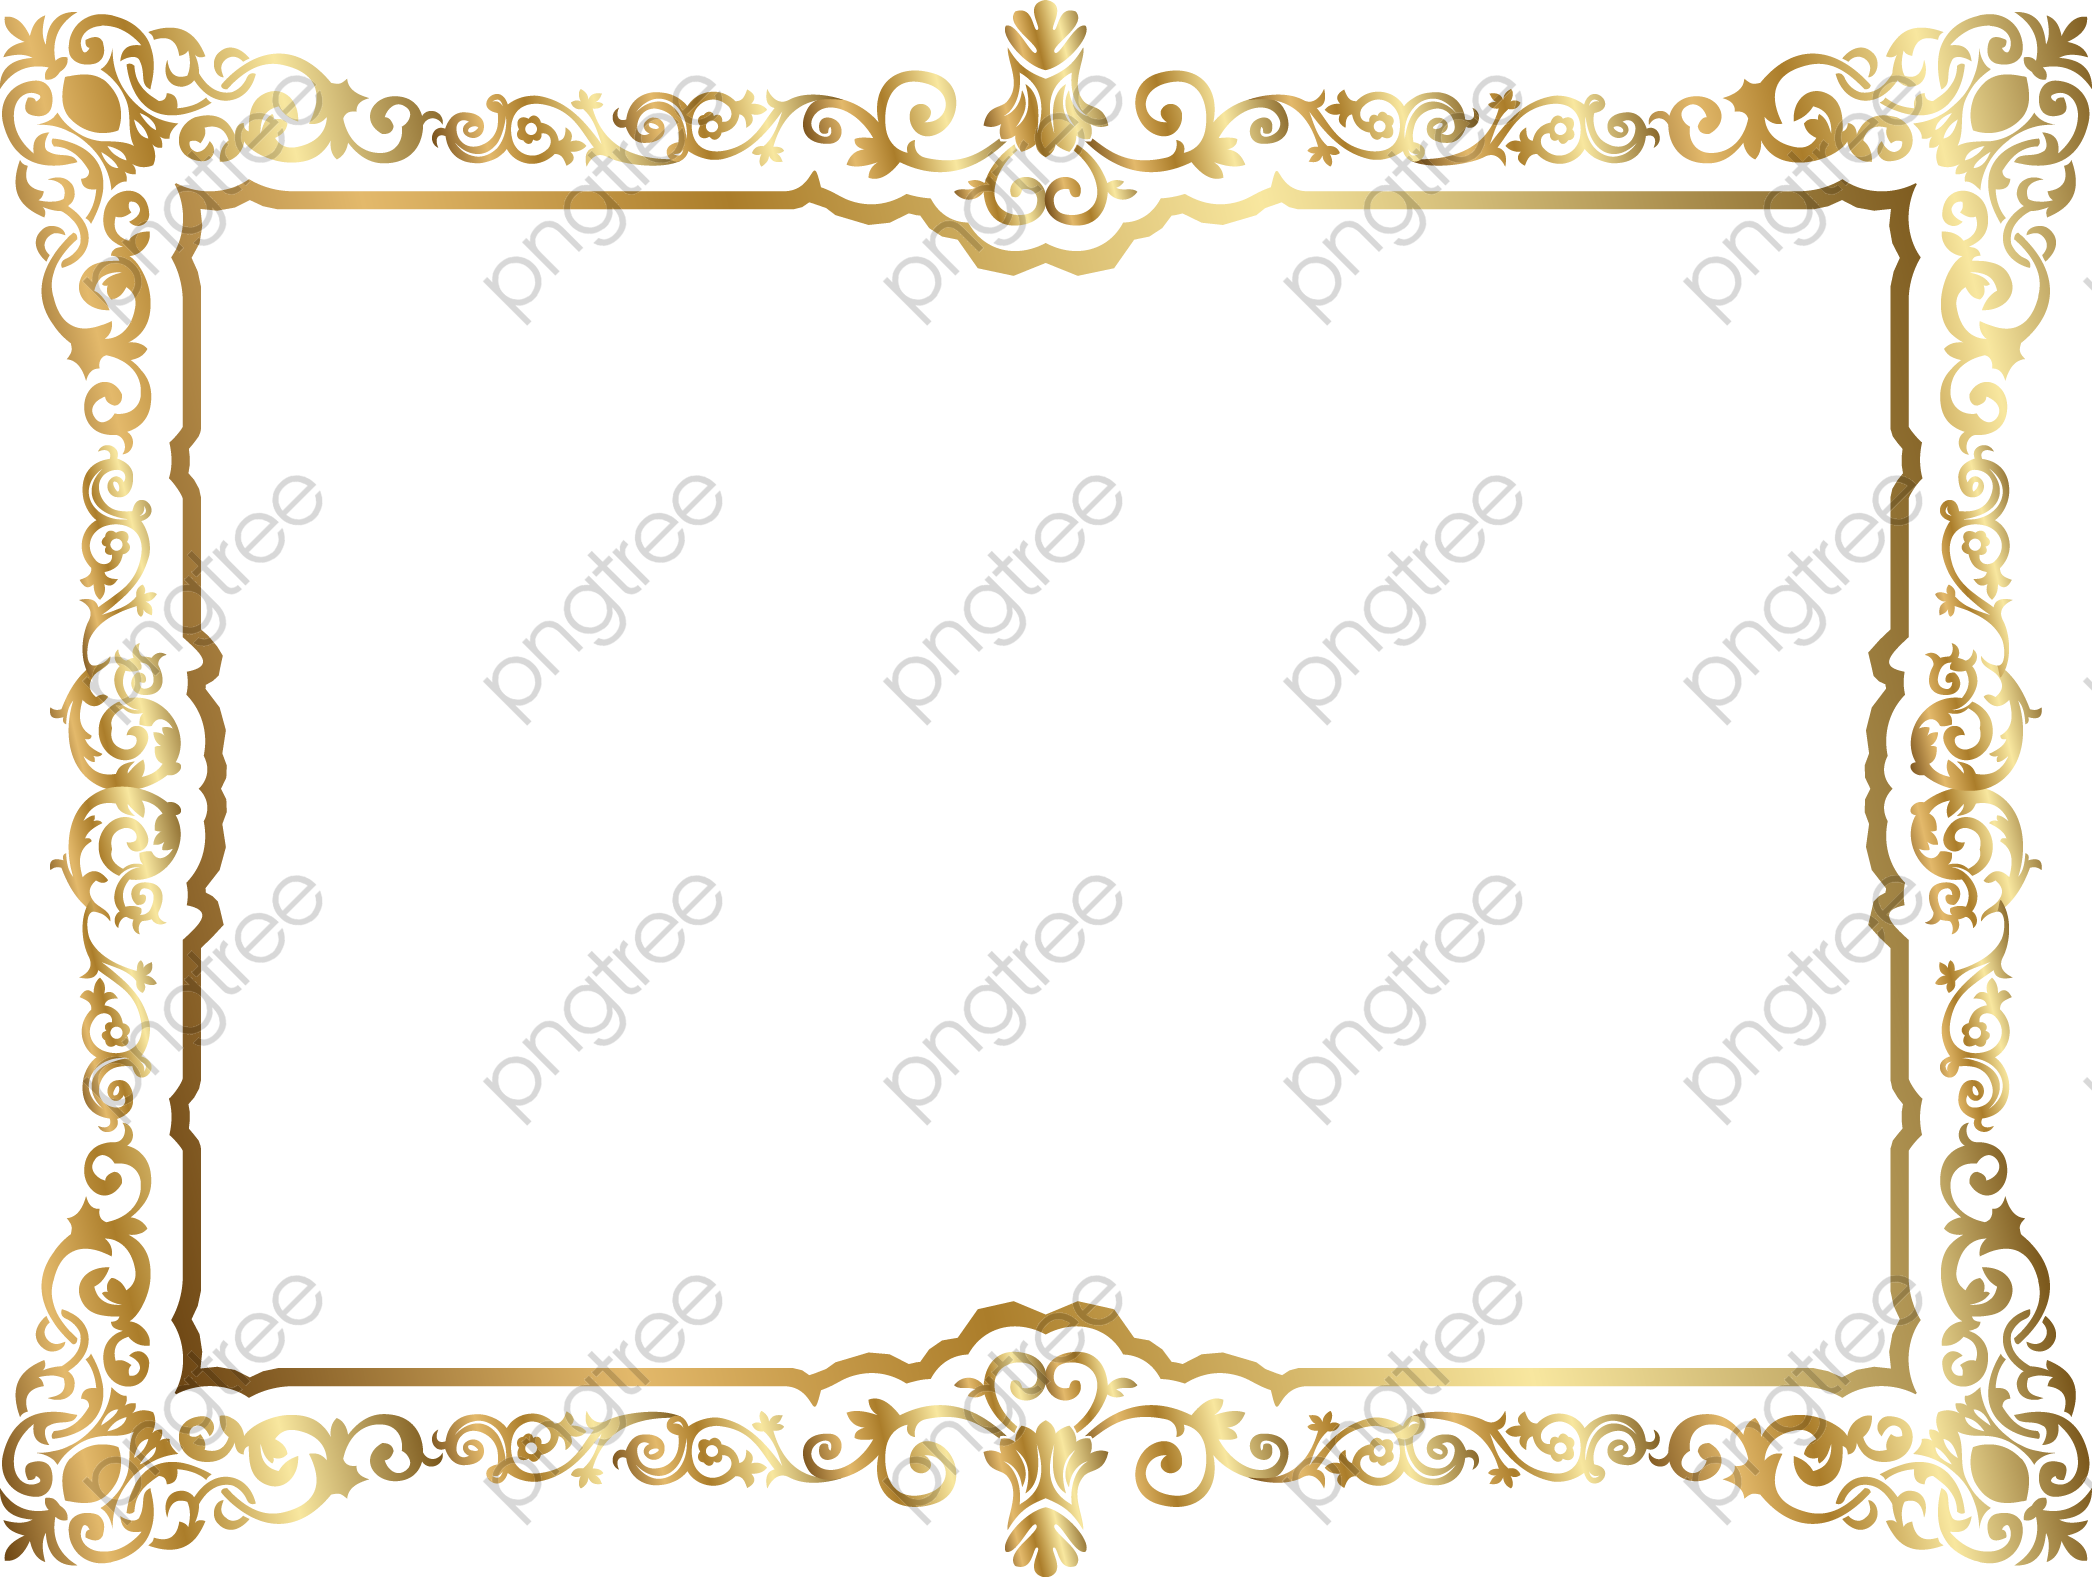 transparent certificate border png format image with size